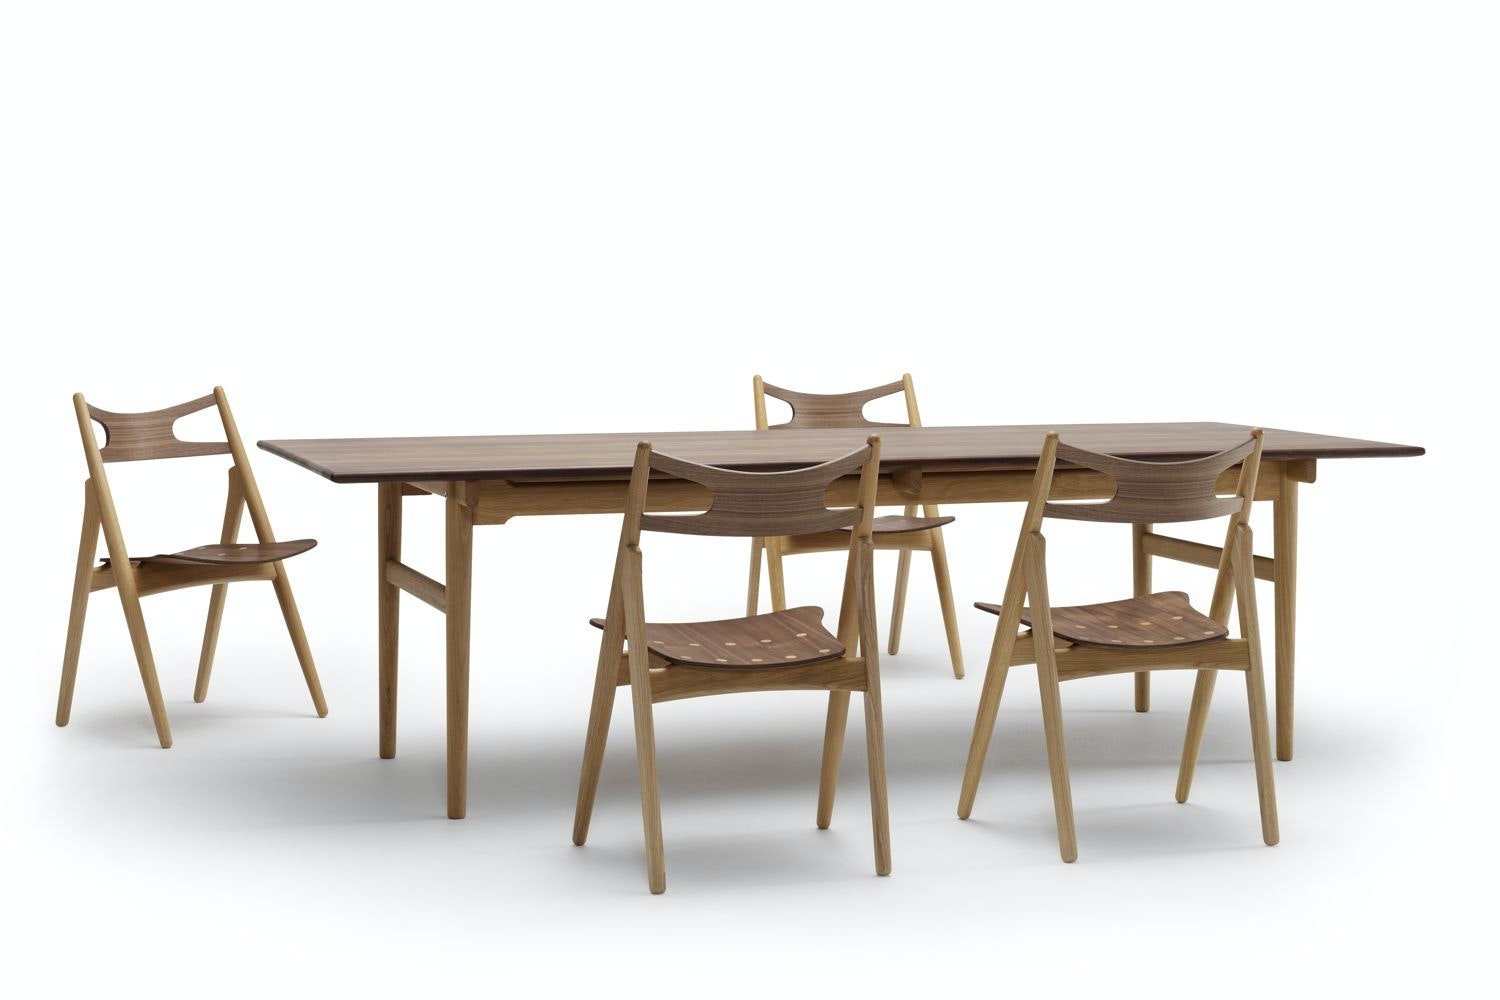 CH327 Mix by Hans J. Wegner for Carl Hansen & Son